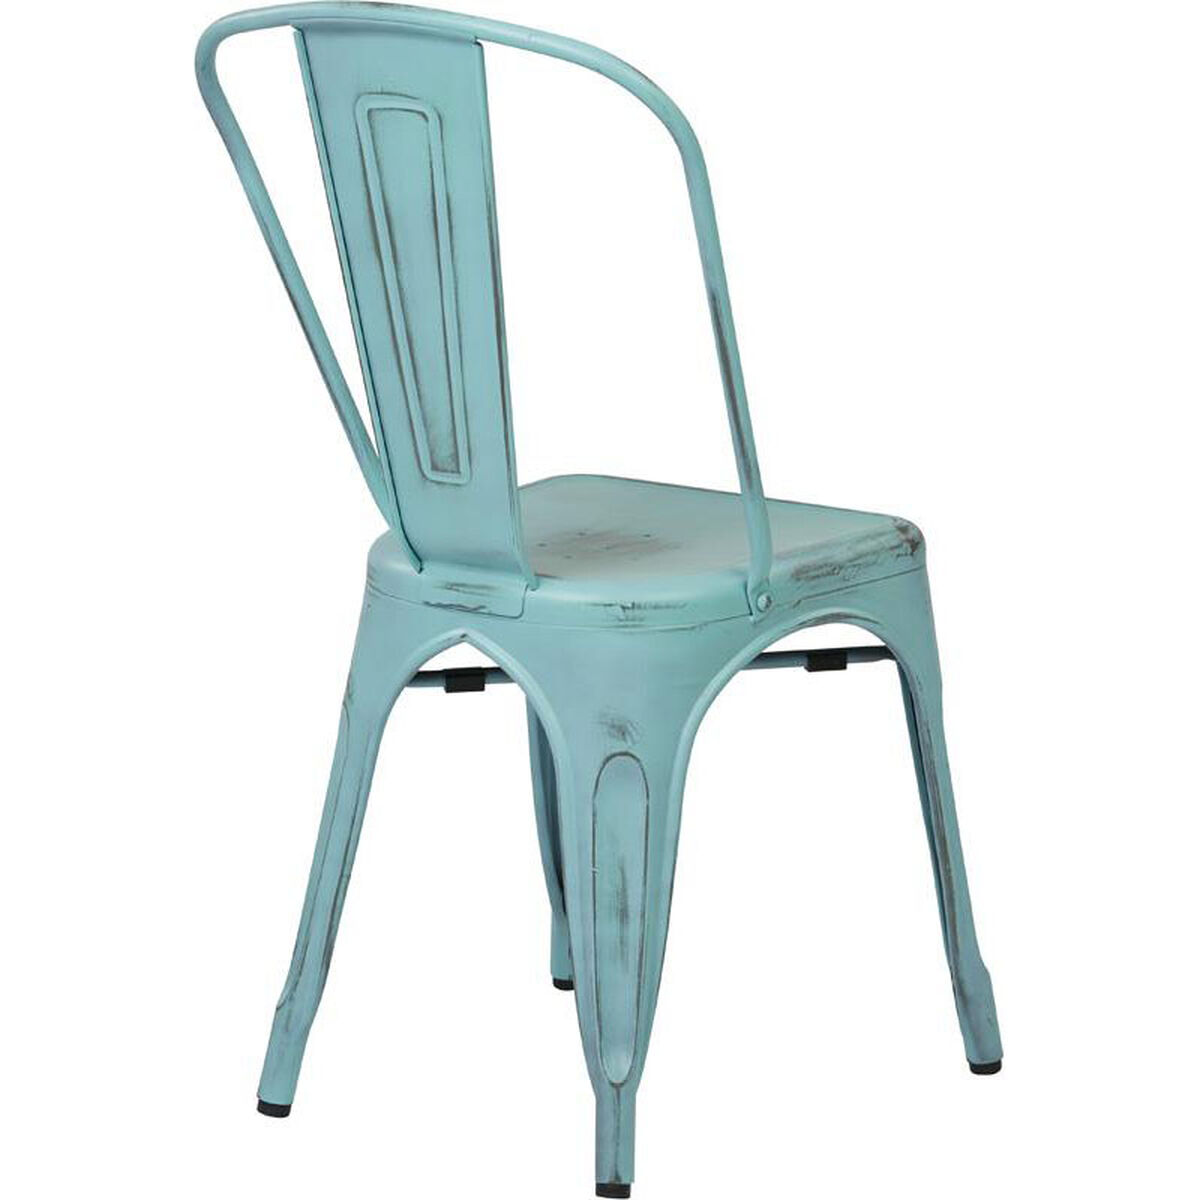 Set Of 2 Blue Stacking Chair Brw29a2 Asb